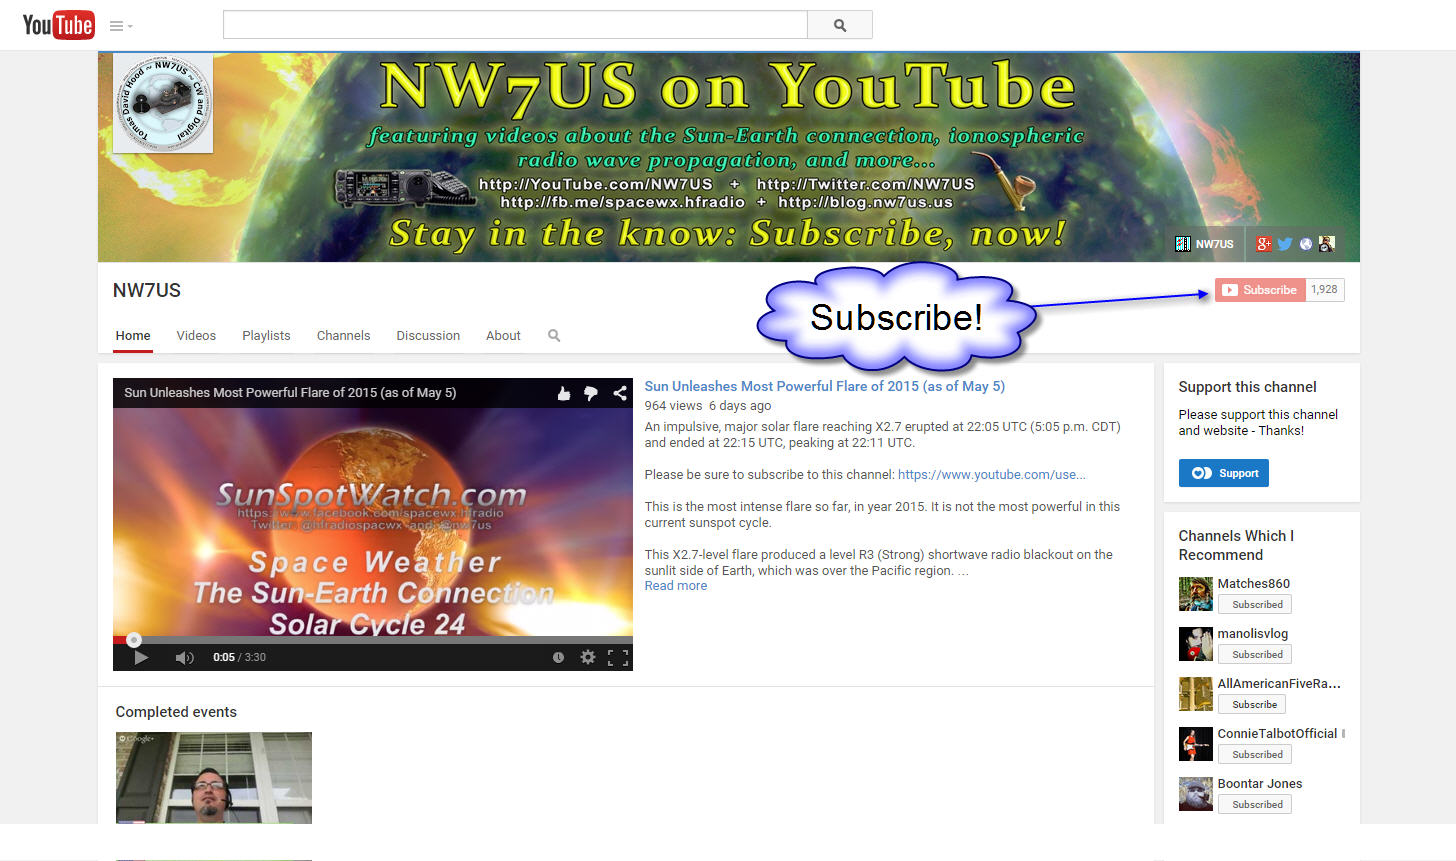 Please subscribe to NW7US on YouTube